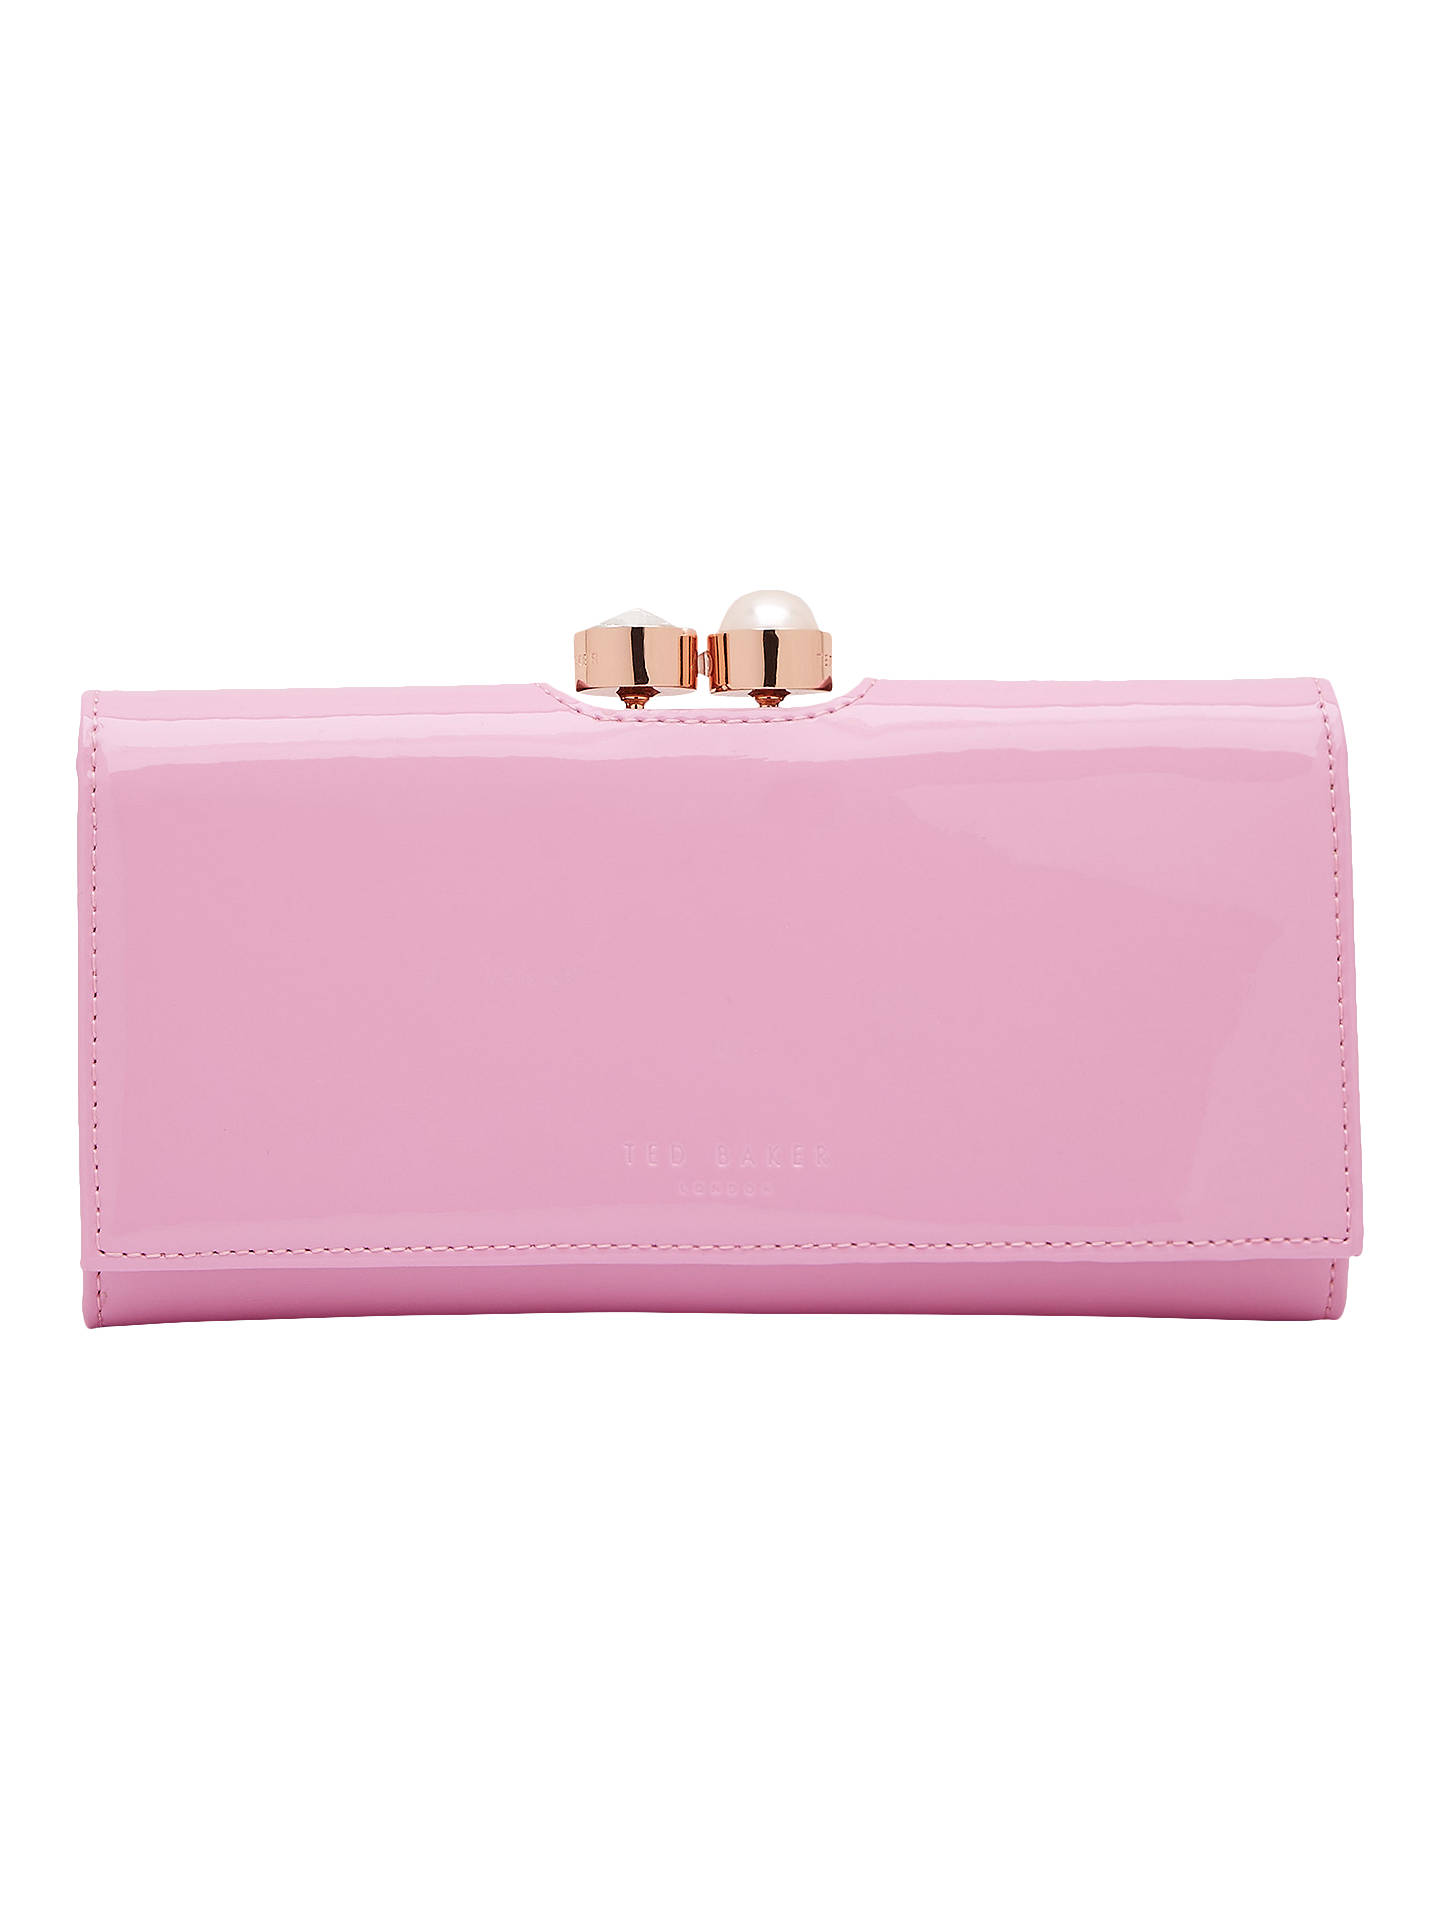 5010059d4ec Buy Ted Baker Cecilie Pearl Leather Matinee Purse, Pale Pink Online at  johnlewis.com ...